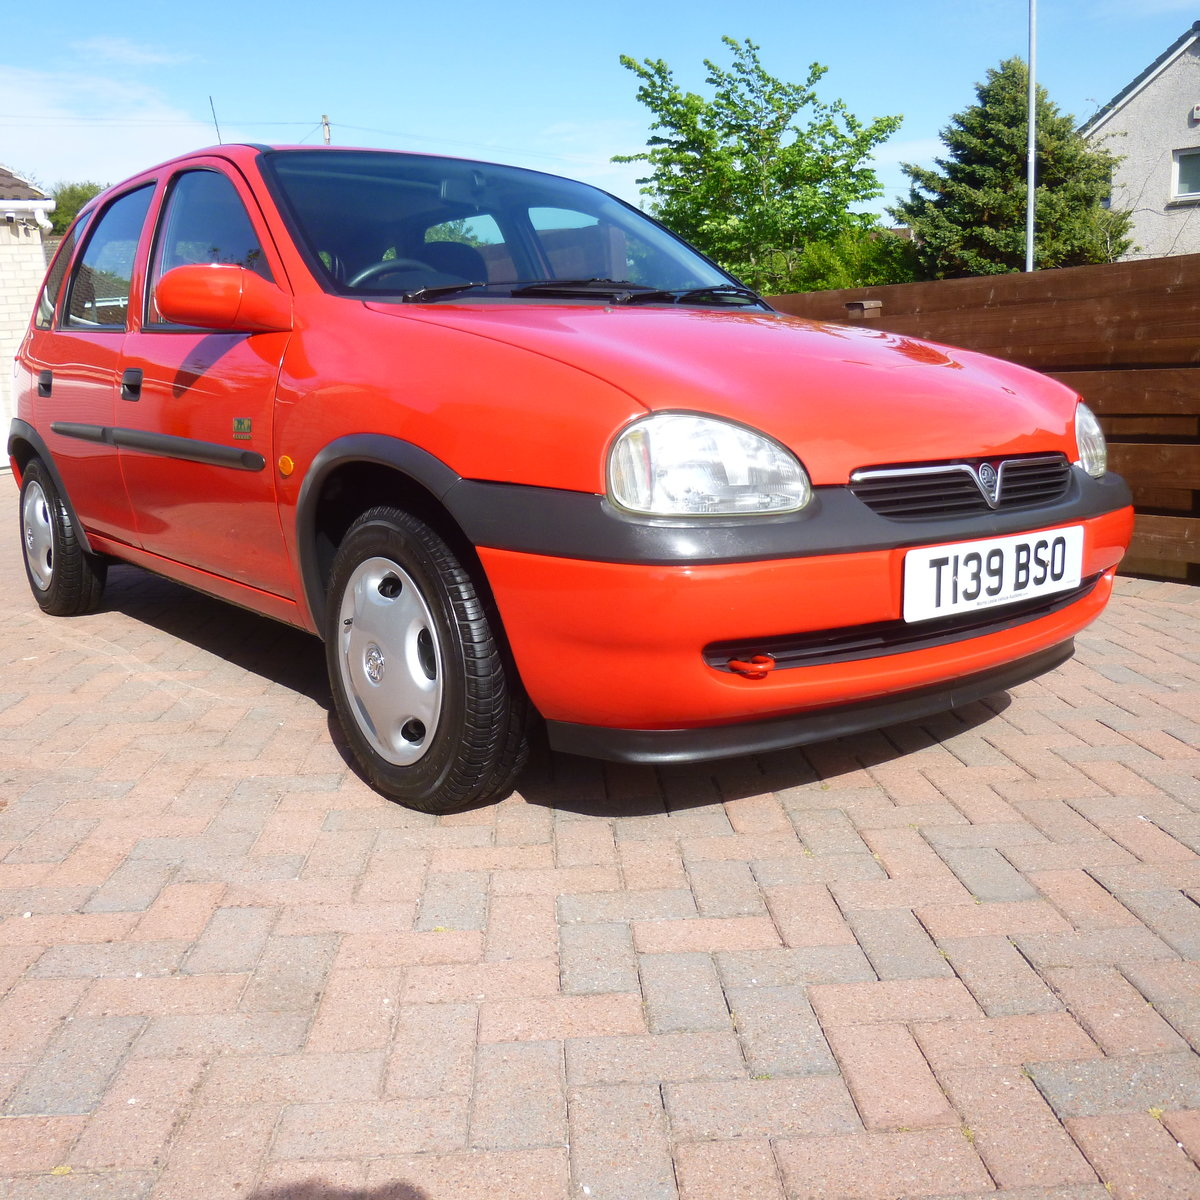 1999 Vauxhall Corsa 1.2 Breeze Only 6,862 miles SOLD (picture 1 of 6)